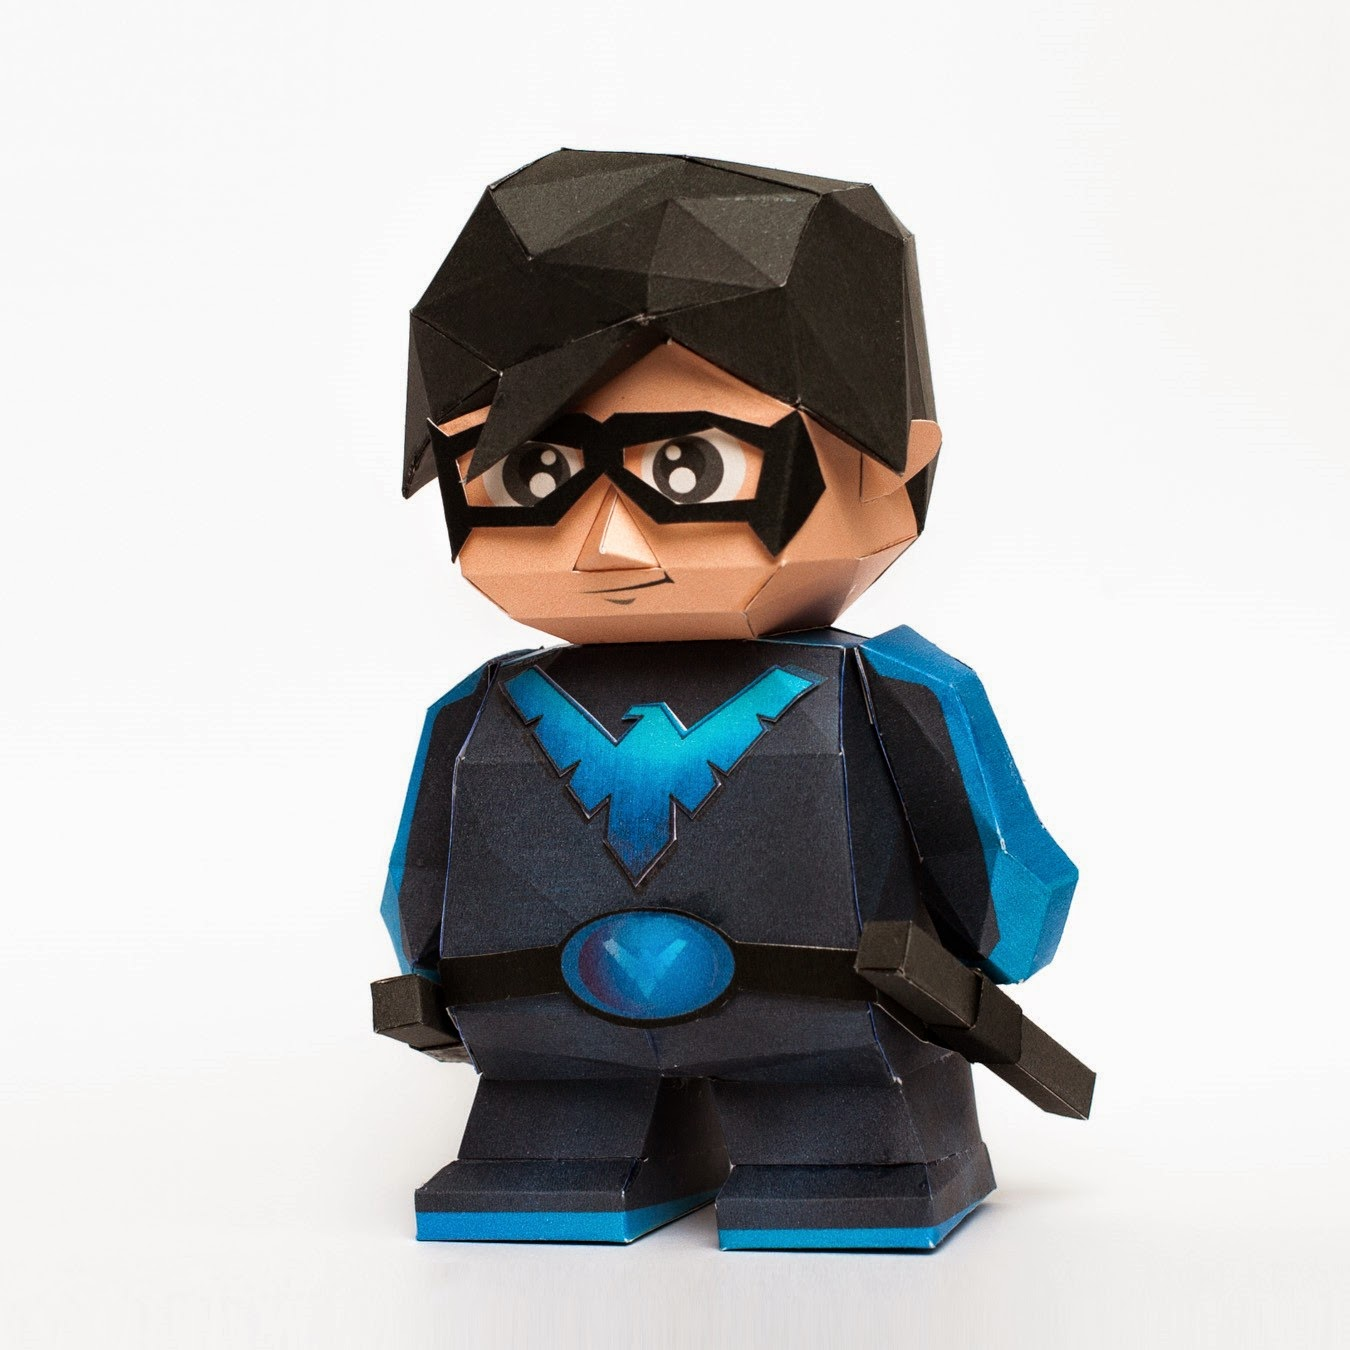 Nightwing Papercraft Model Paper Toy